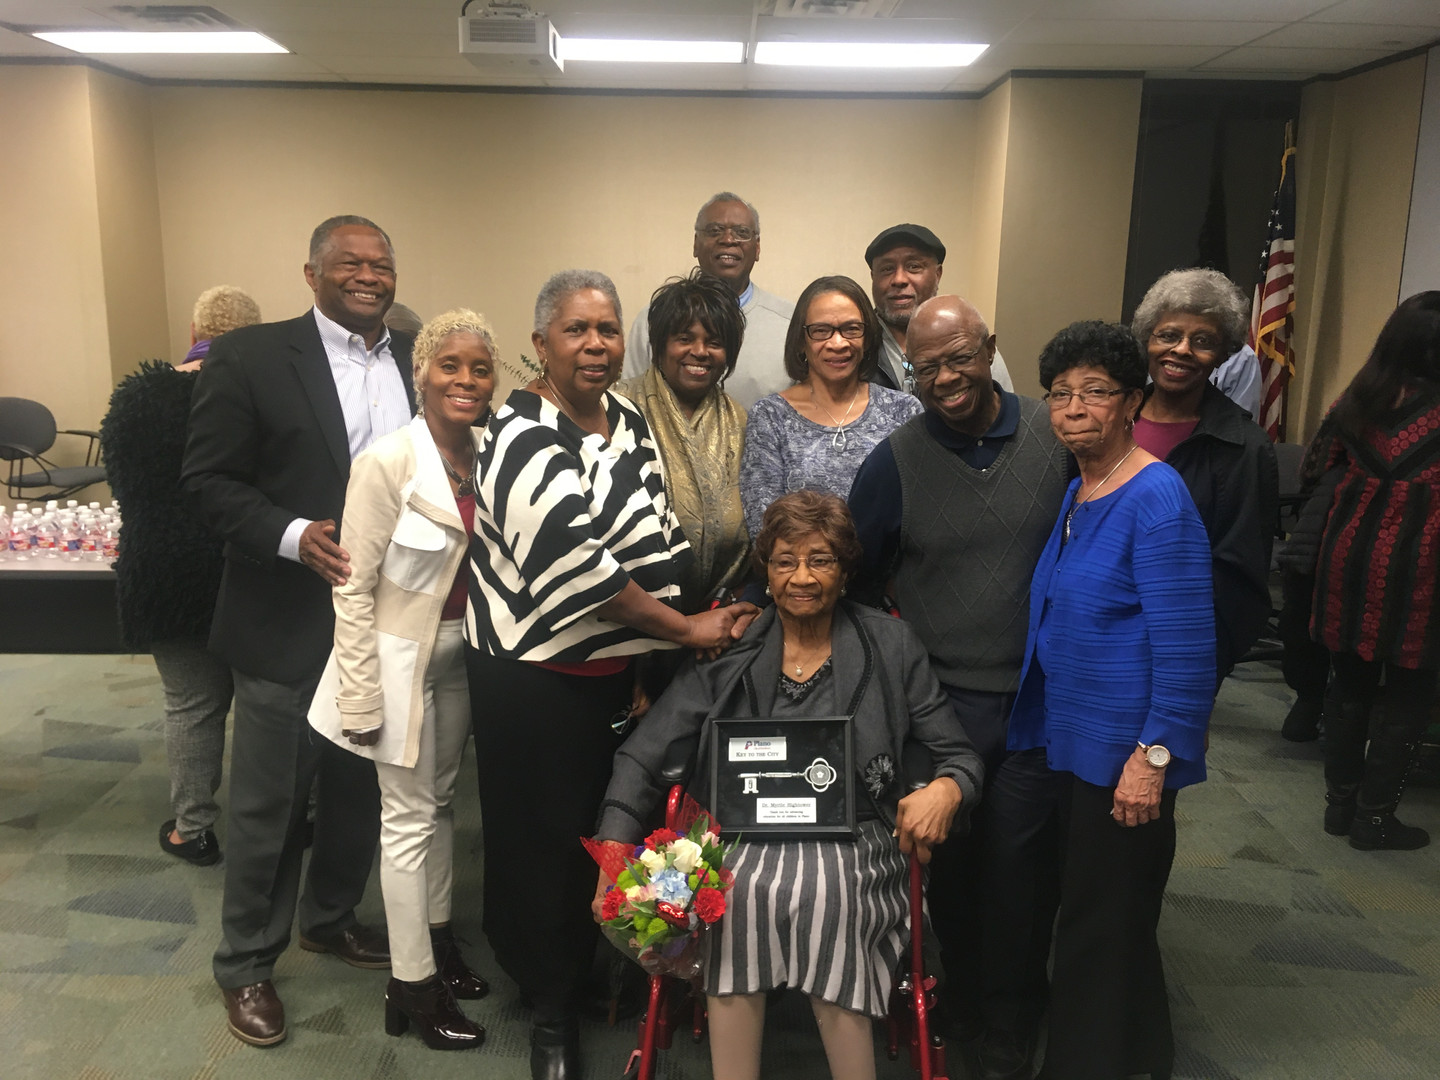 Dr. Myrtle Hightower receives a Key to the City.